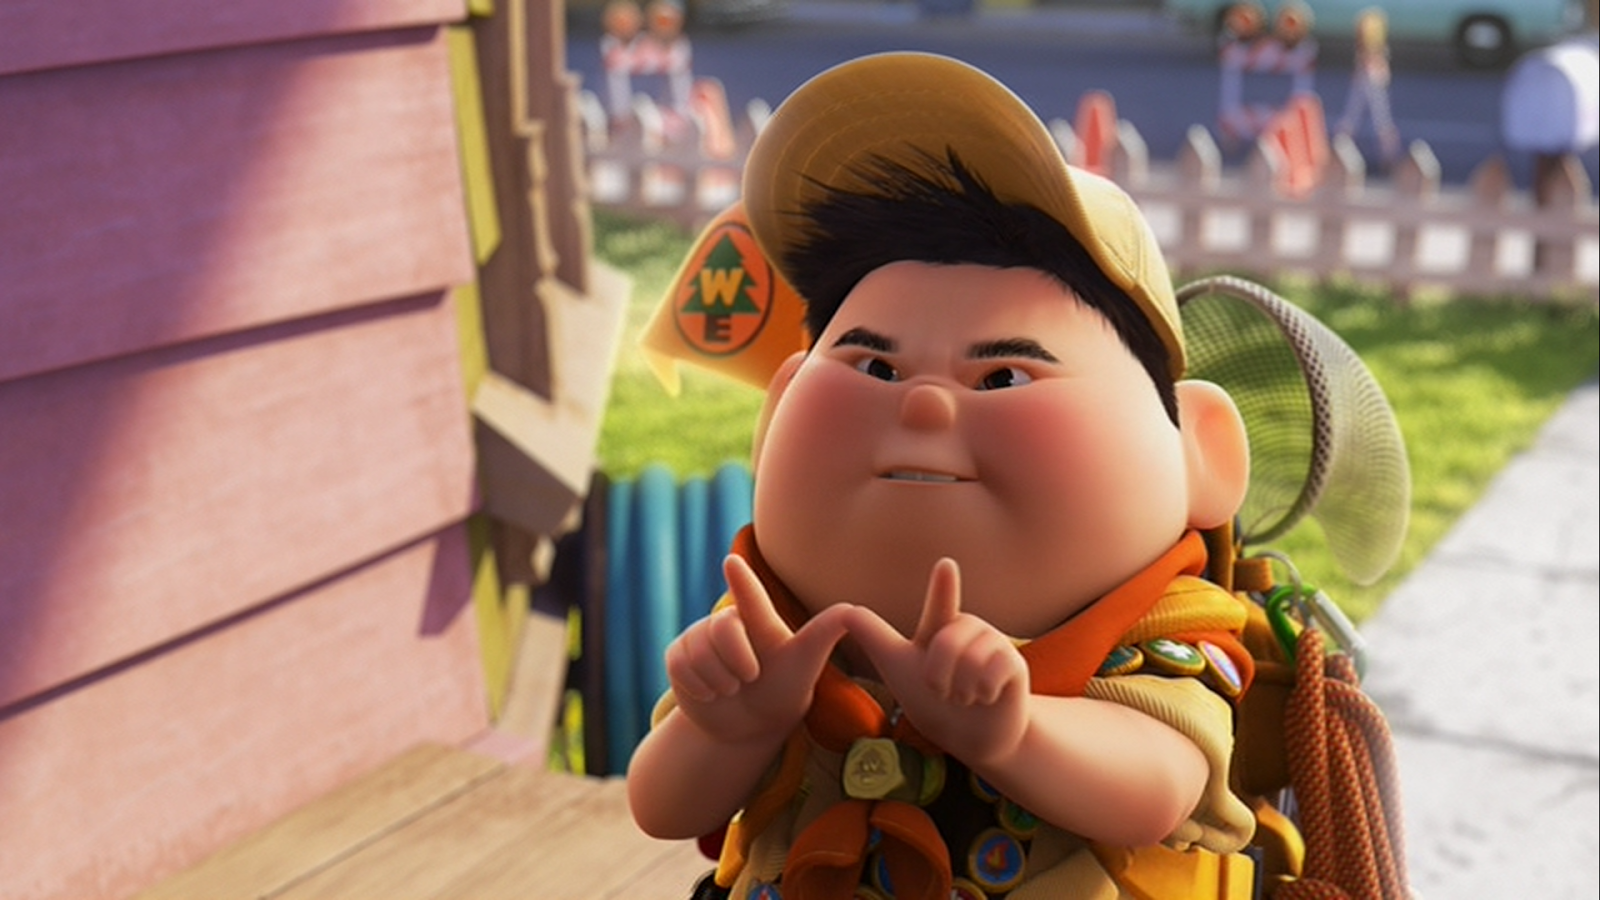 8 pixar characters that could start as a patriots qb